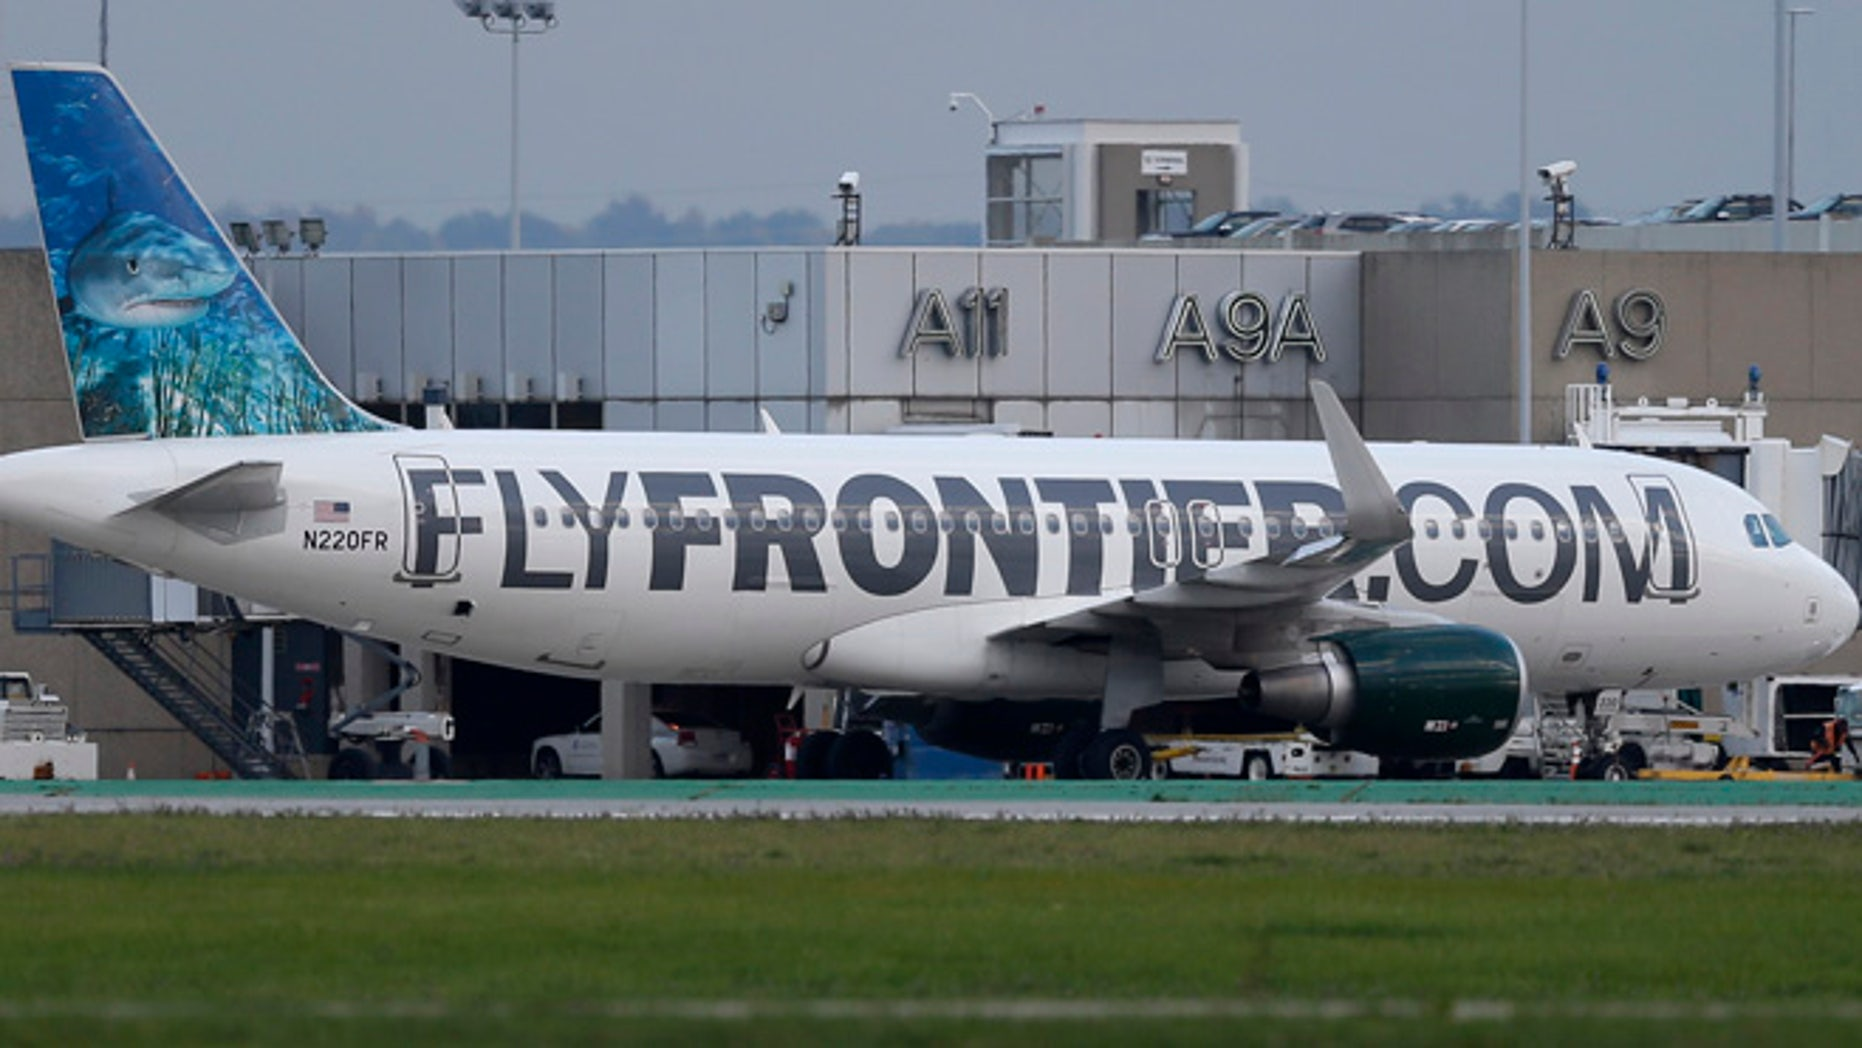 Oct. 15, 2014: The Frontier Airlines plane that Amber Vinson flew from Cleveland to Dallas on Monday, taxies away from the terminal at Cleveland Hopkins International Airport in Cleveland.